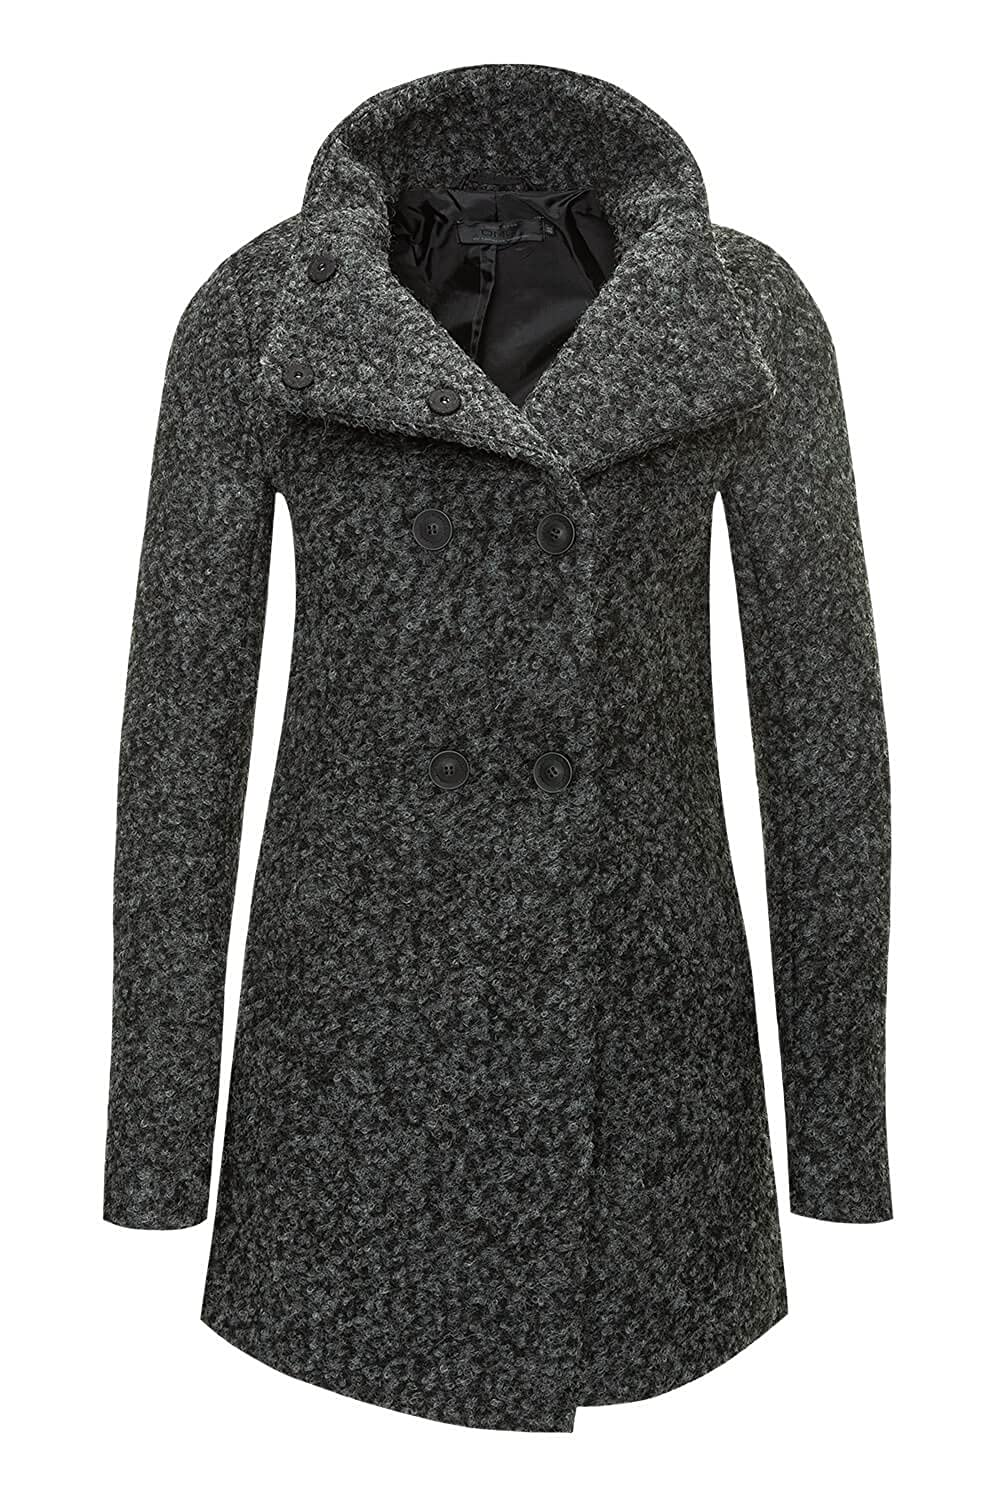 Only Damen Wollmantel Kurzmantel Winterjacke